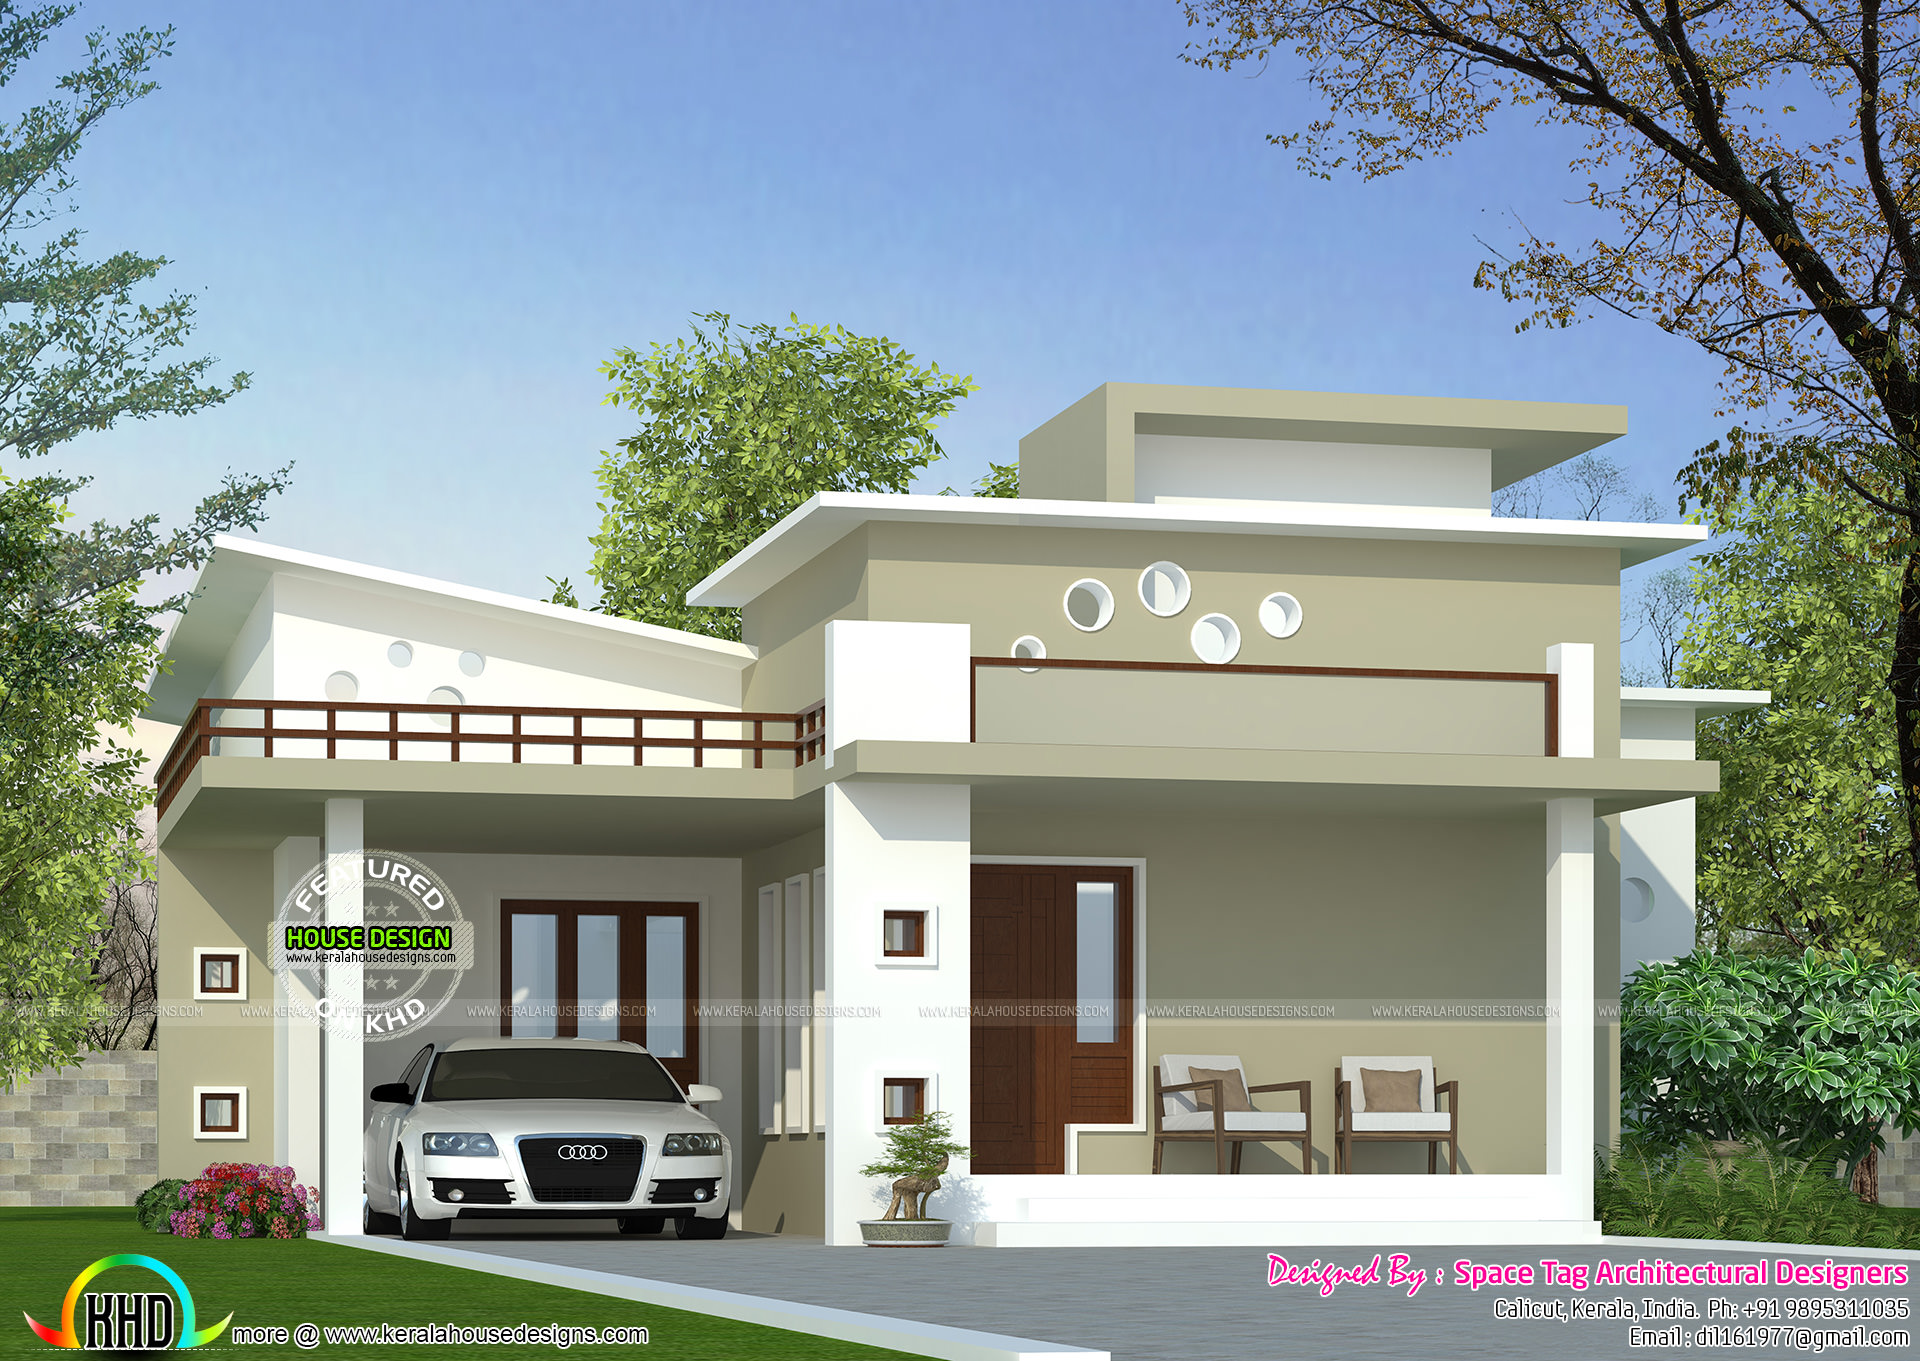 Low cost kerala home design kerala home design and floor for Low cost house plans with photos in kerala